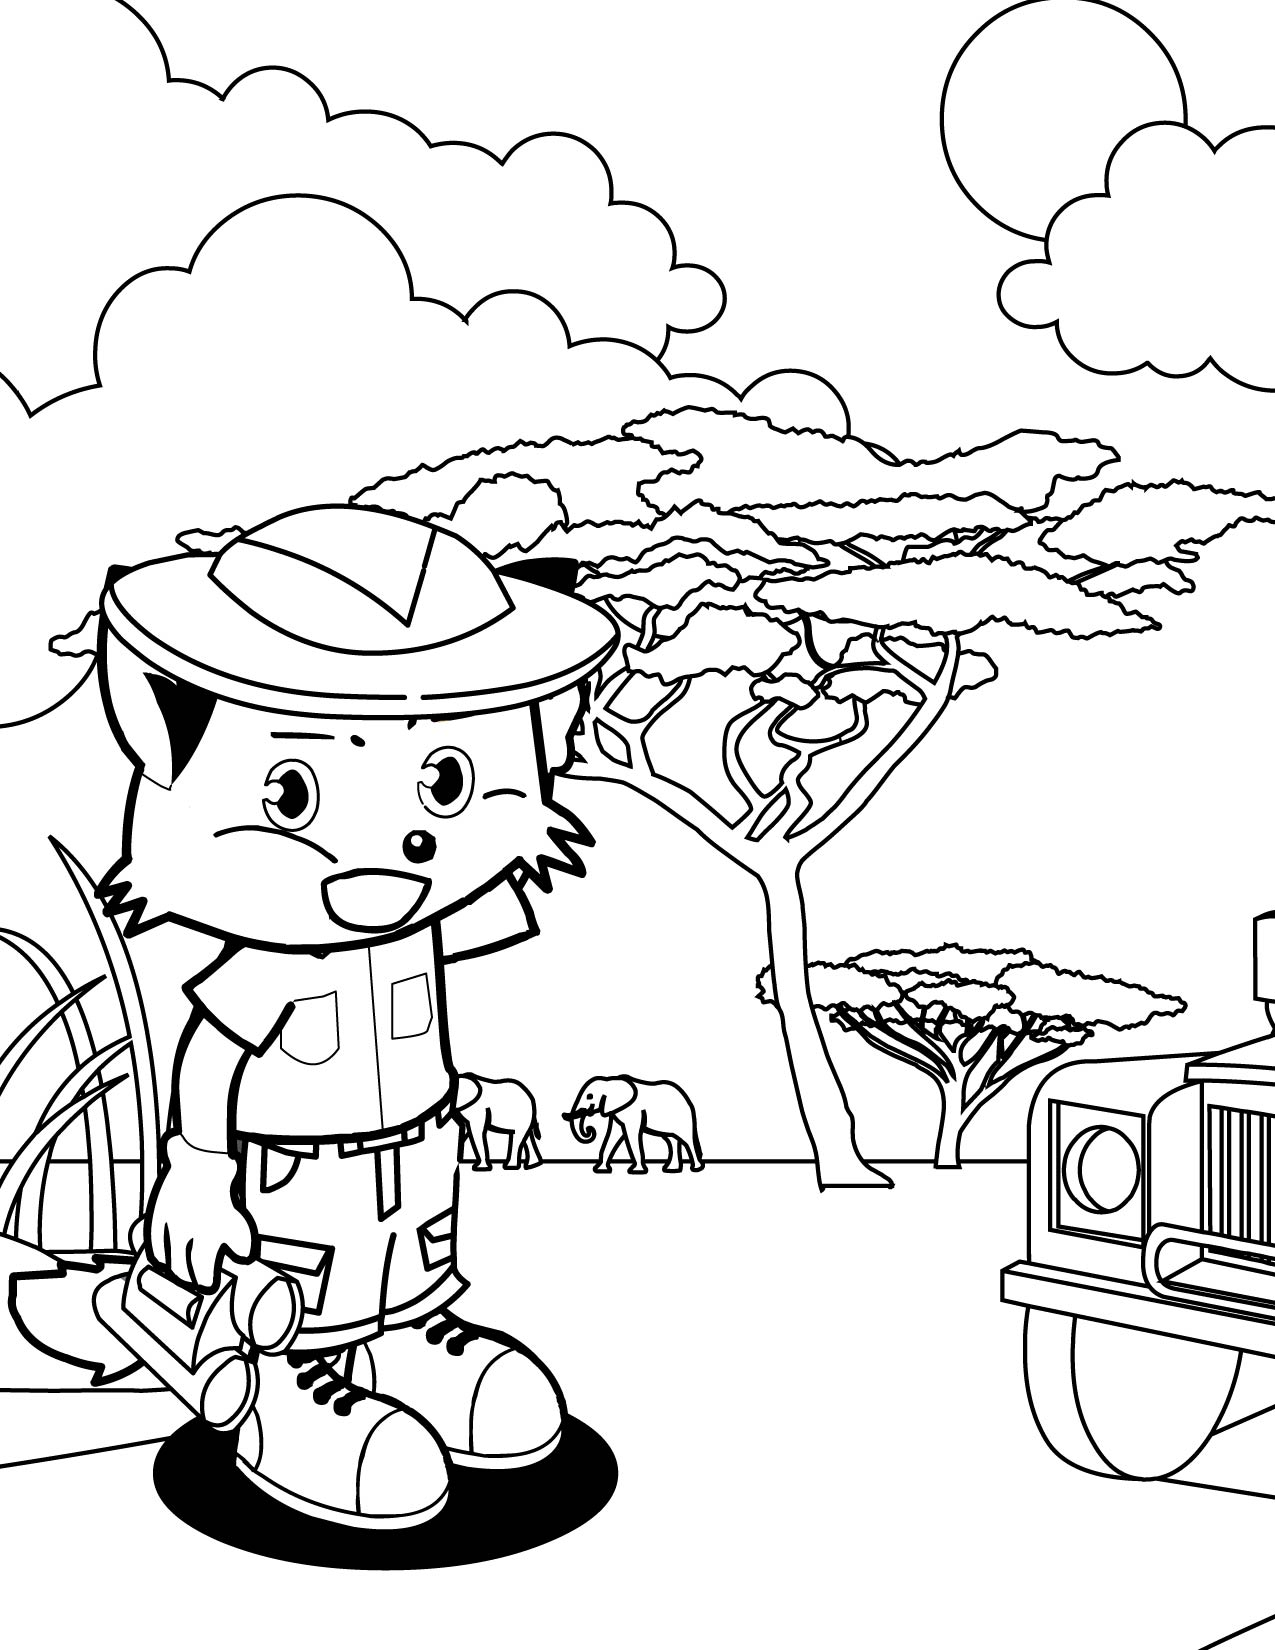 Safari Coloring Page - Handipoints